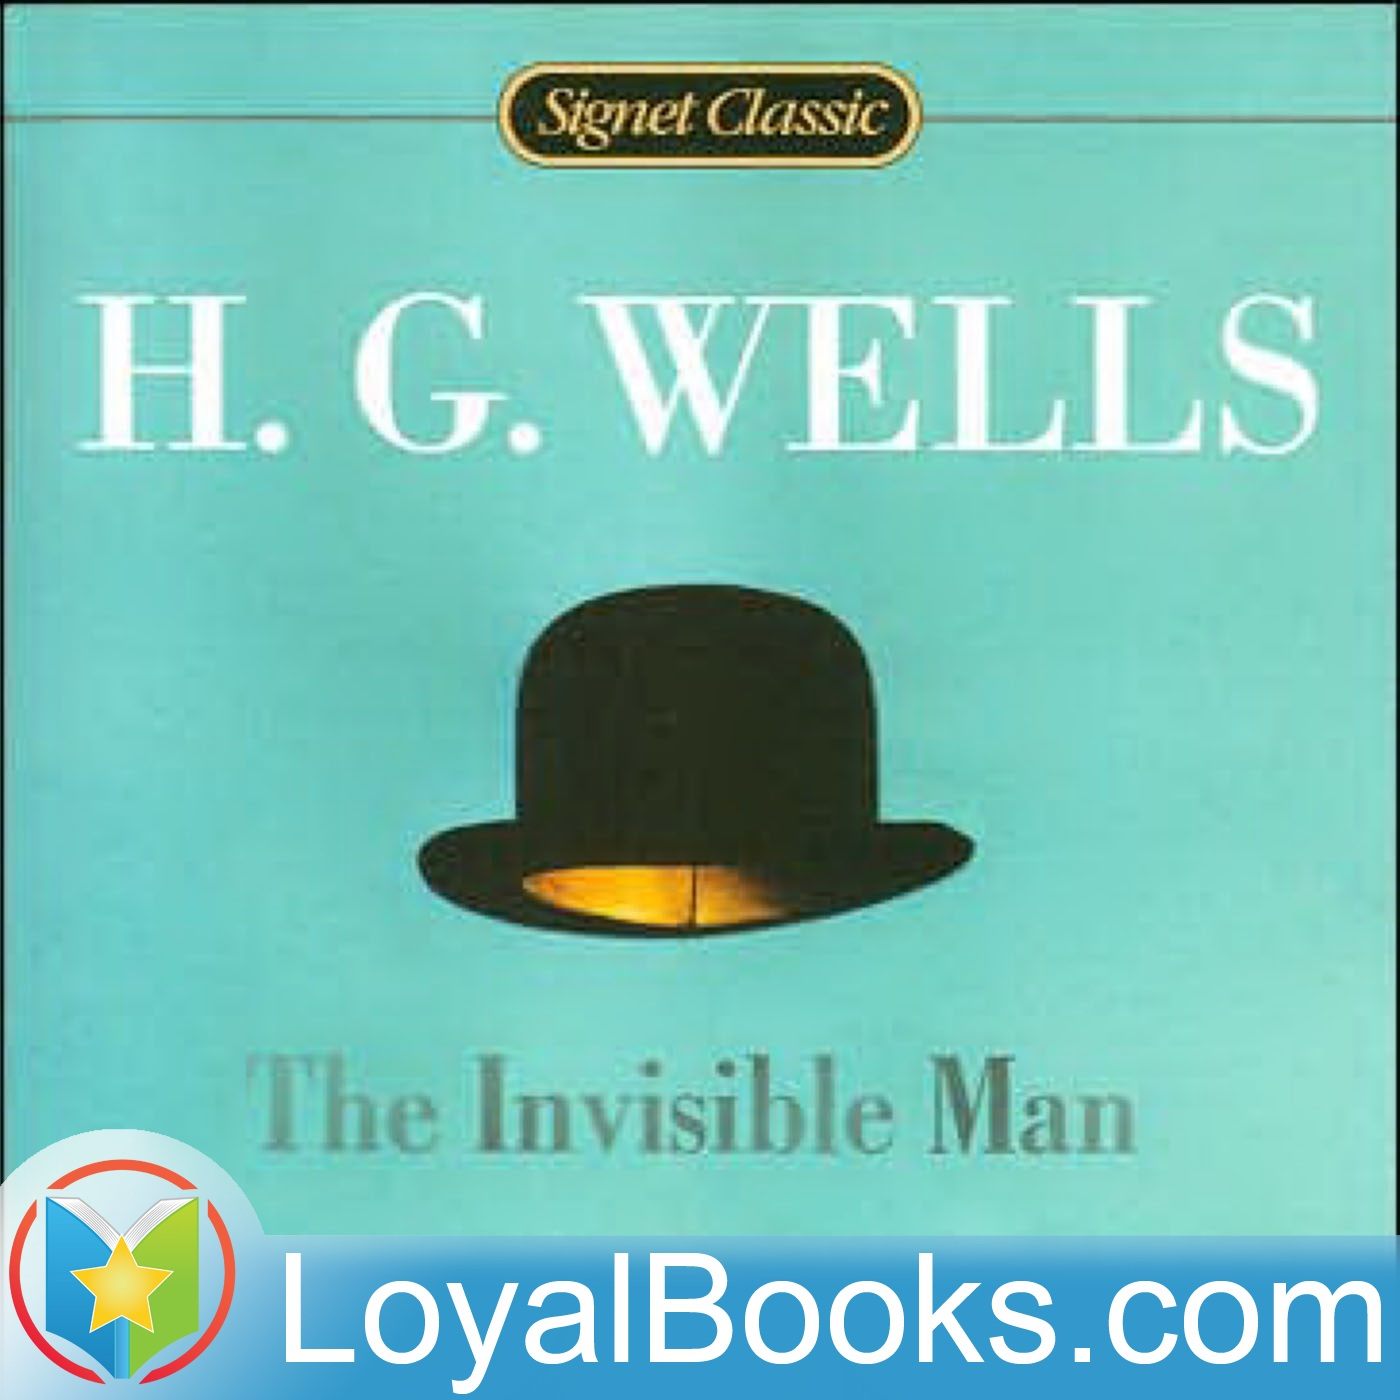 <![CDATA[The Invisible Man by H. G. Wells]]>